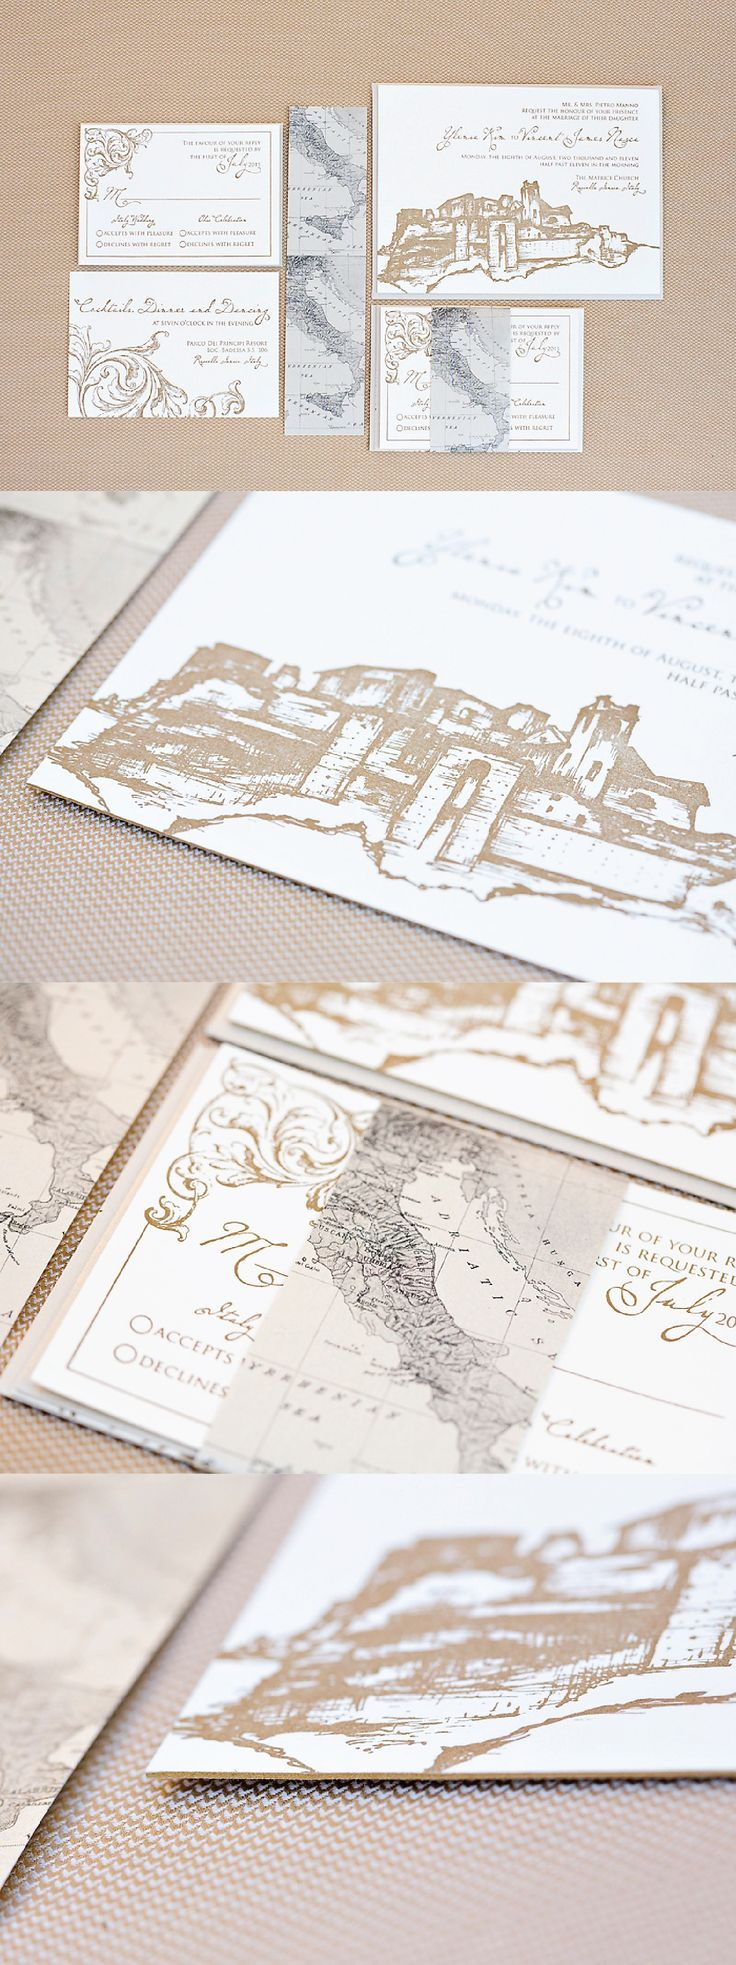 Italy wedding invitations with a sketch of the castle in Roccella Ionica, Italy. The invitations were printed with gold letterpress and edged in gold.  A vintage map of Italy was designed to wrap around the invitation suite.  Click to see more of this invitation or pin for later!